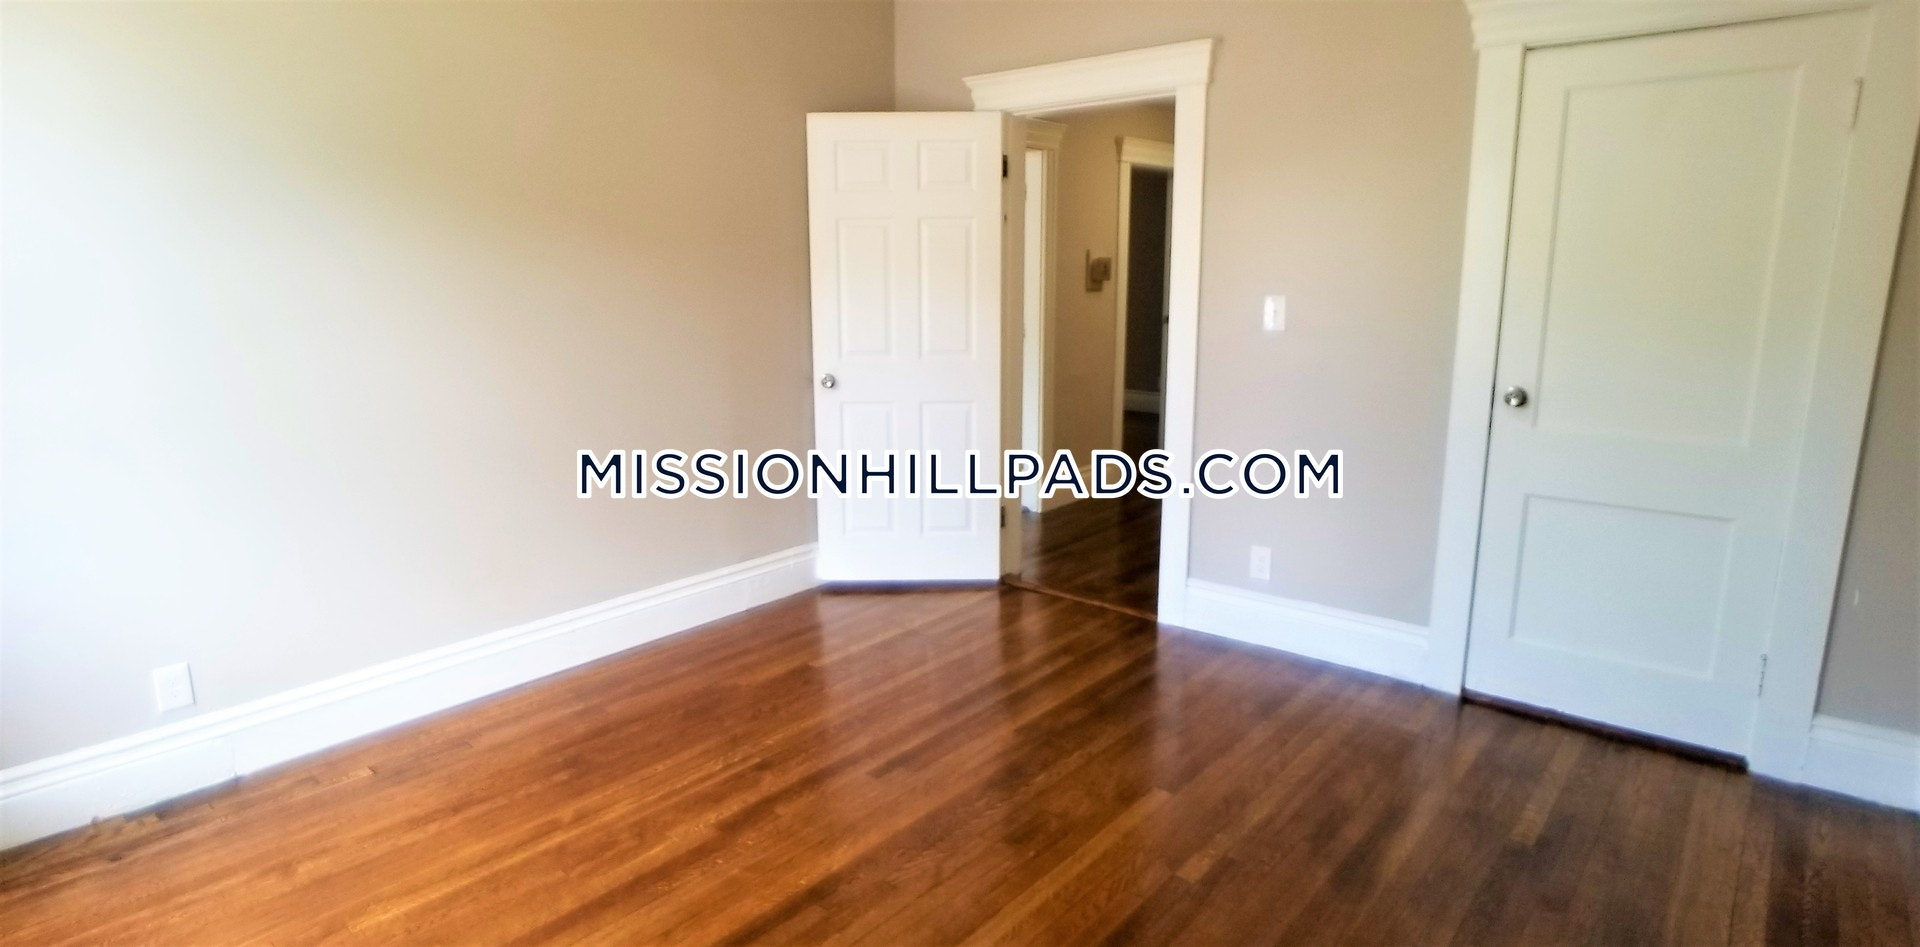 4 Beds 1.5 Baths - Boston - Roxbury $2,600